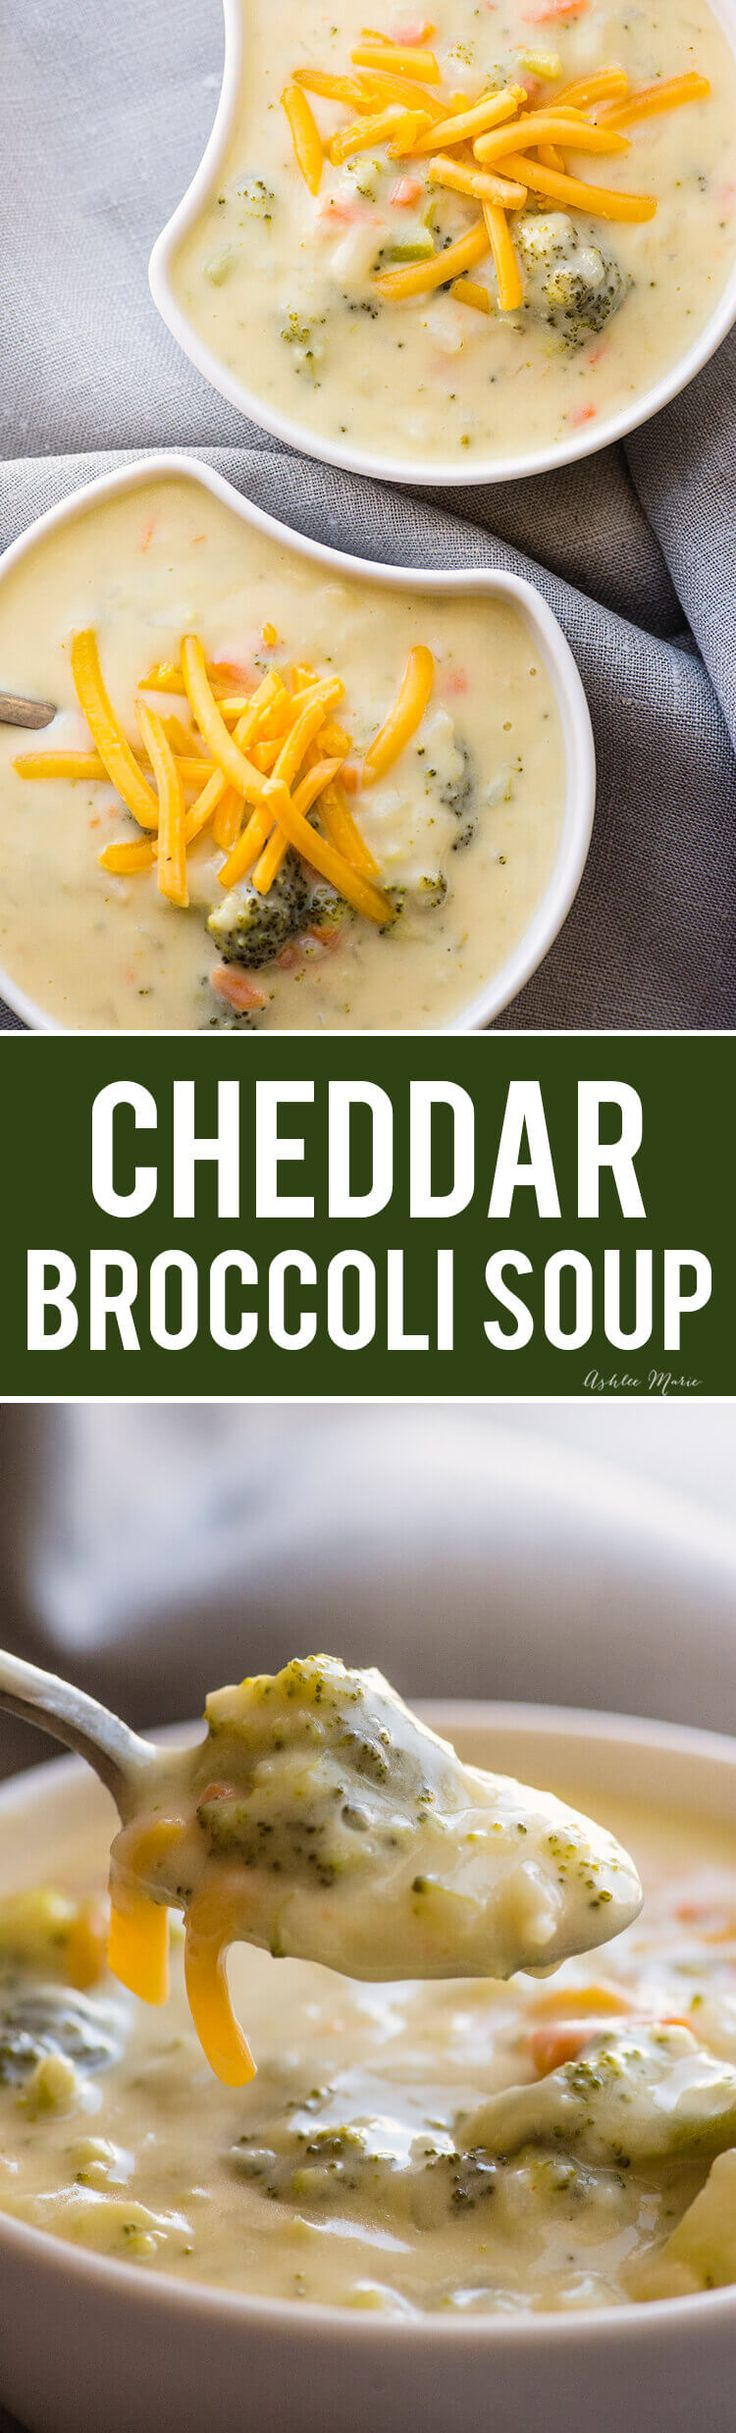 everyone loves this easy cheddar broccoli soup - creamy, full of flavor it's easily my most requested dinner